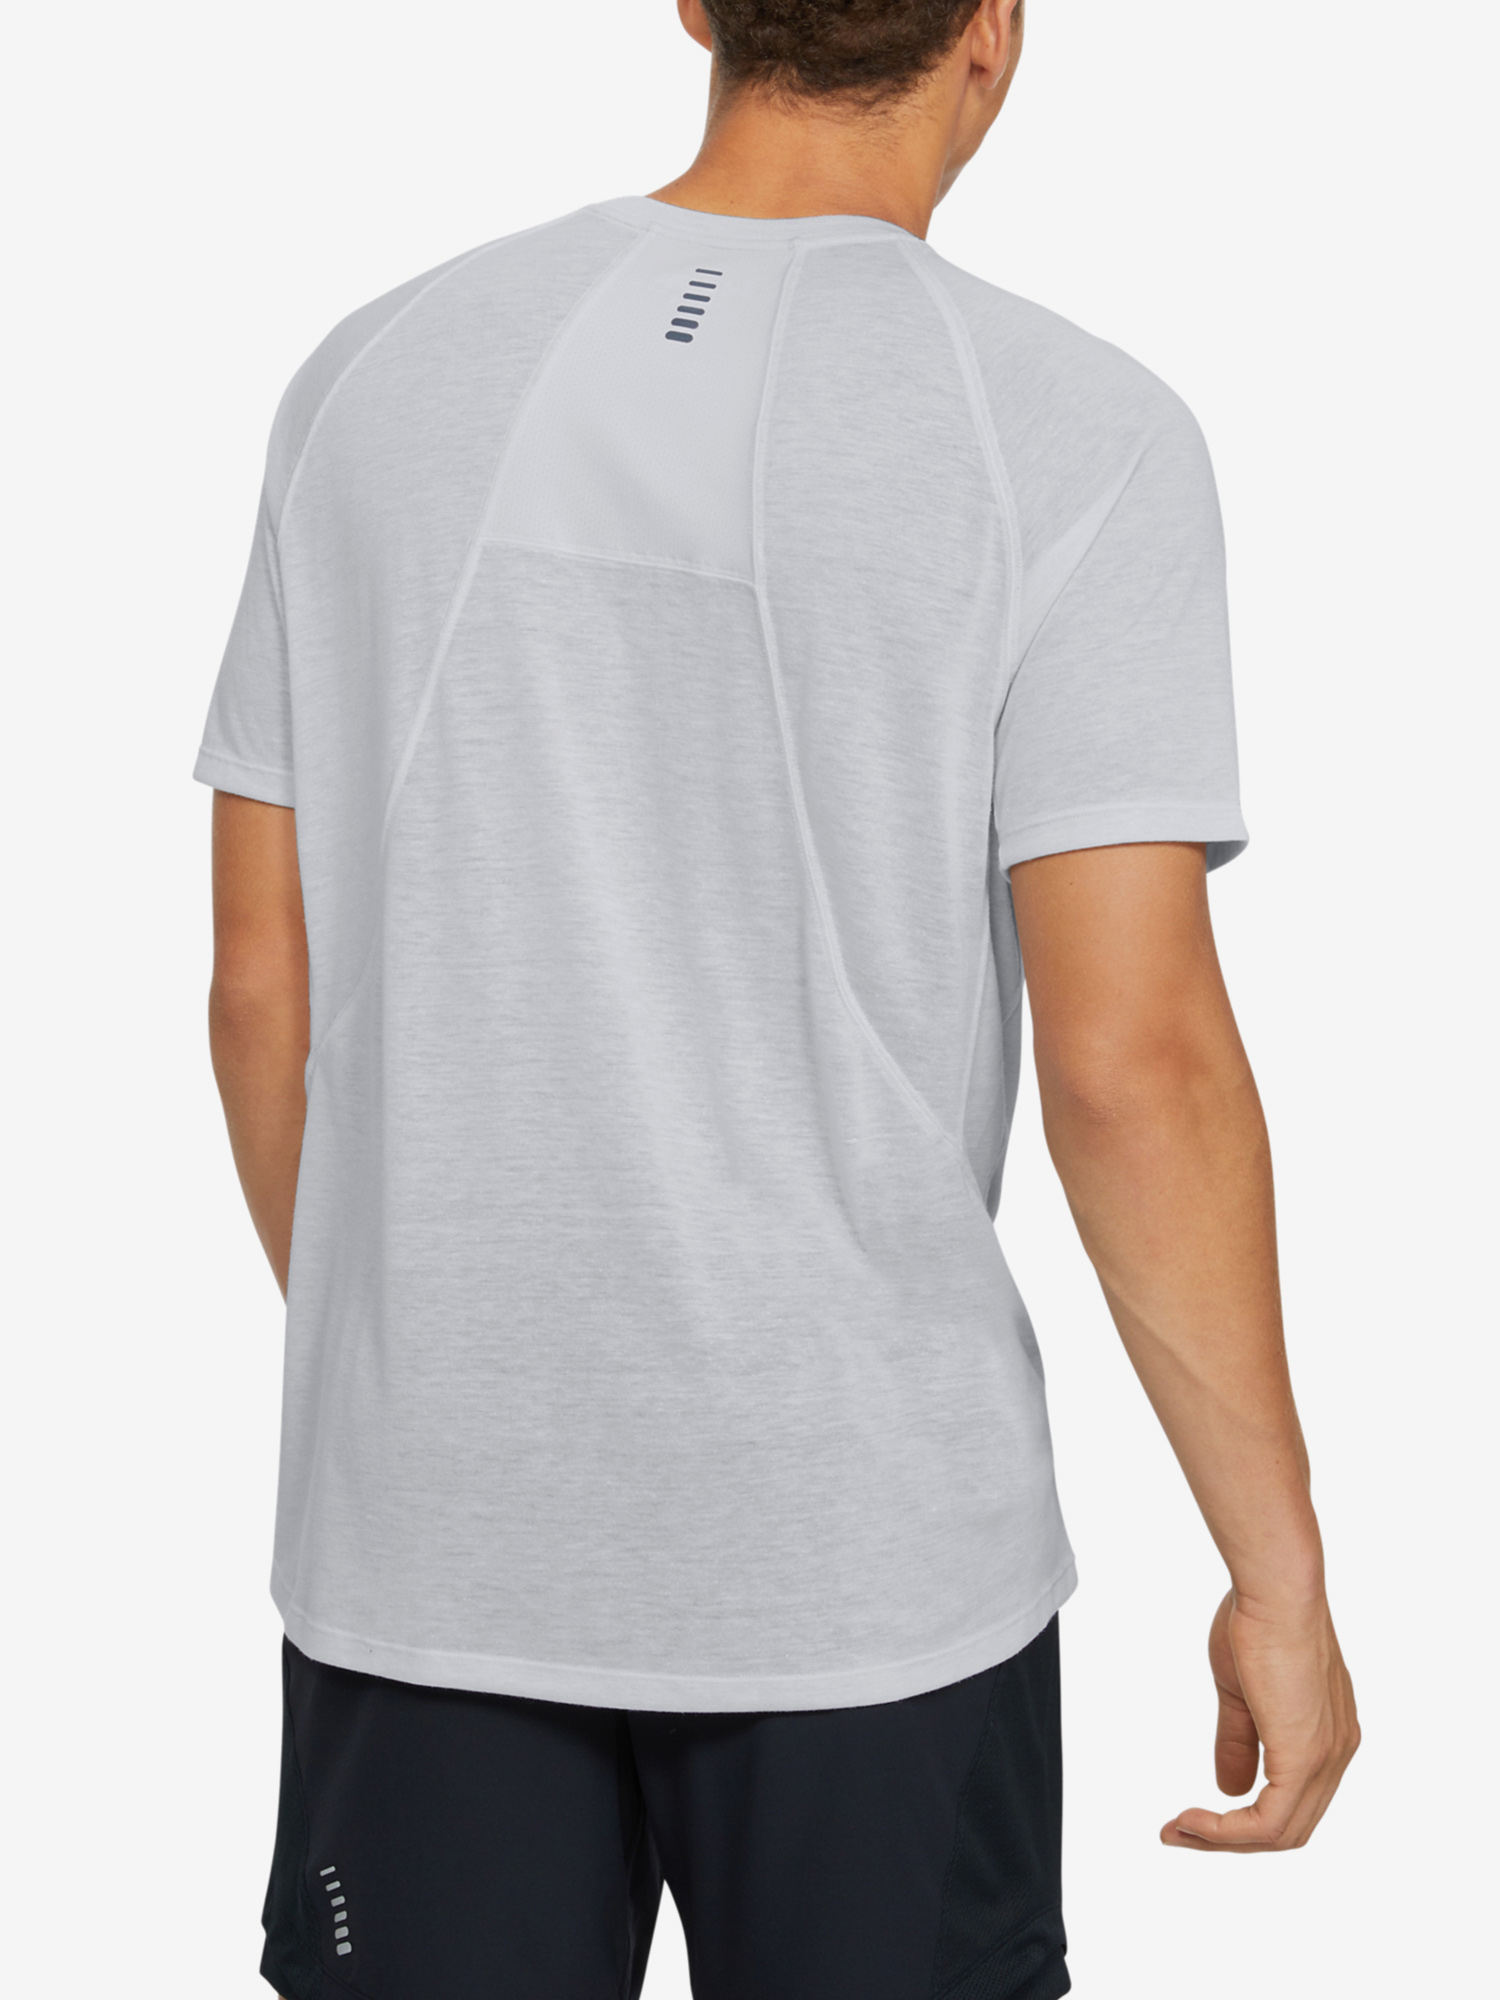 Tričko Under Armour M Breeze Short Sleeve Tee (2)